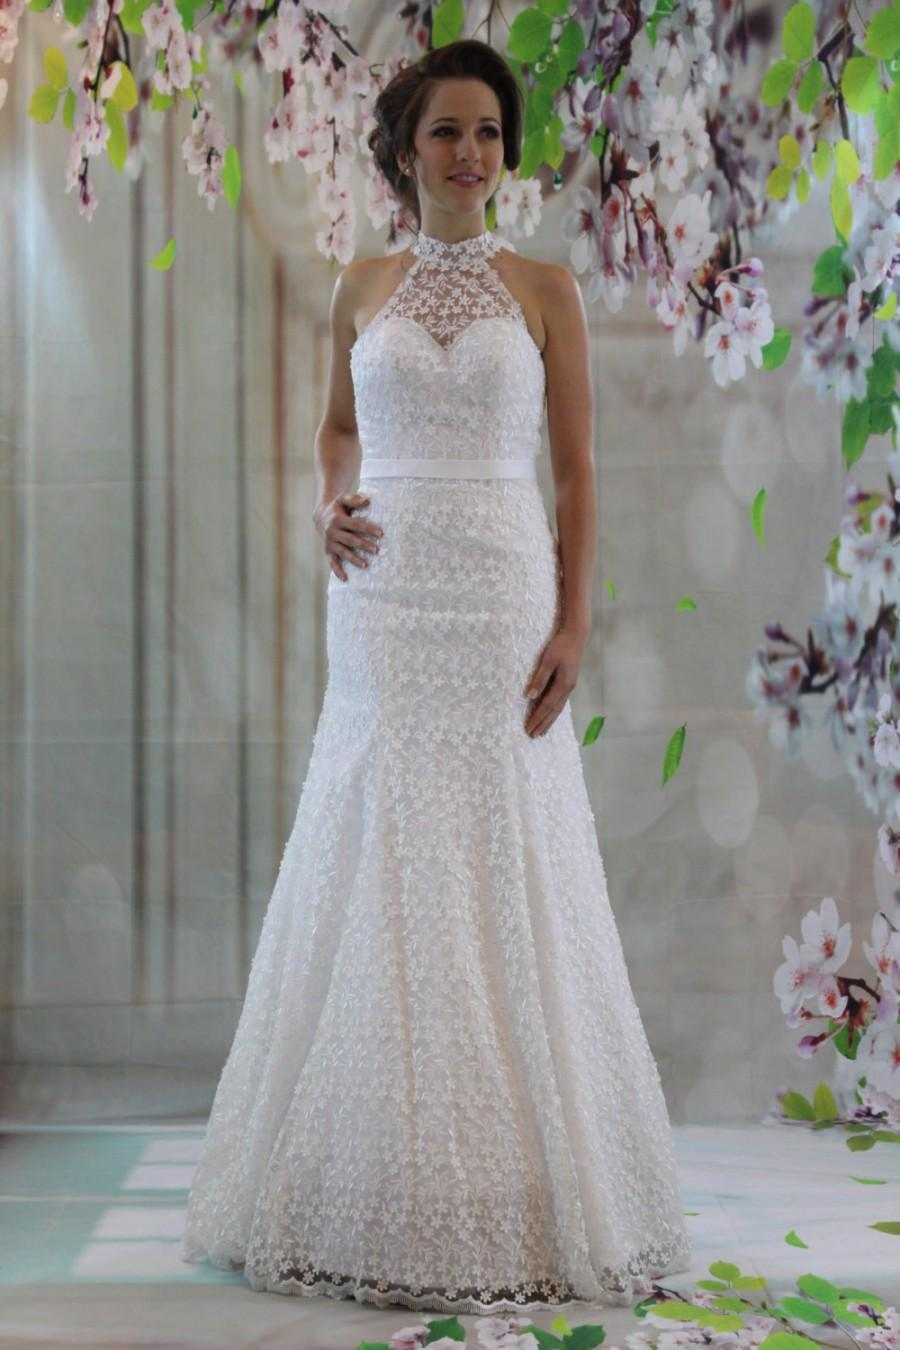 Elegant Sweetheart High Neck Bridal Gown, Full Lace Modified A-line ...